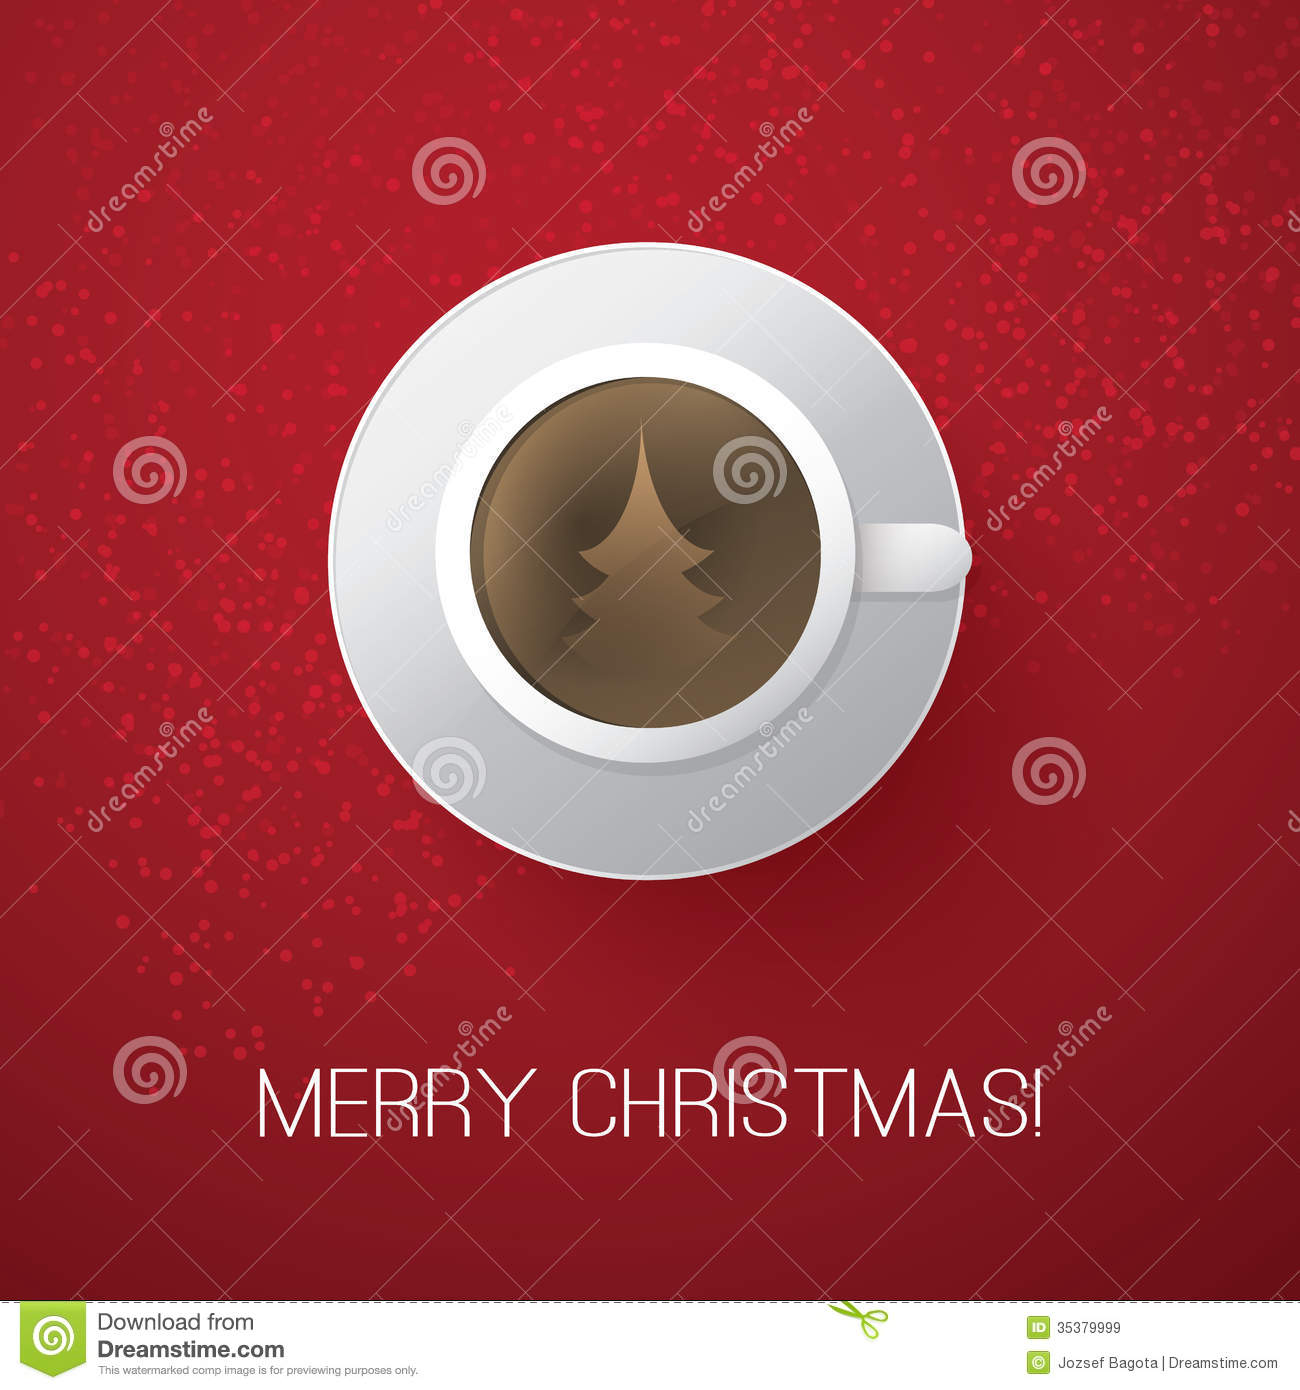 Merry Christmas Card With Coffee Cup Royalty Free Stock